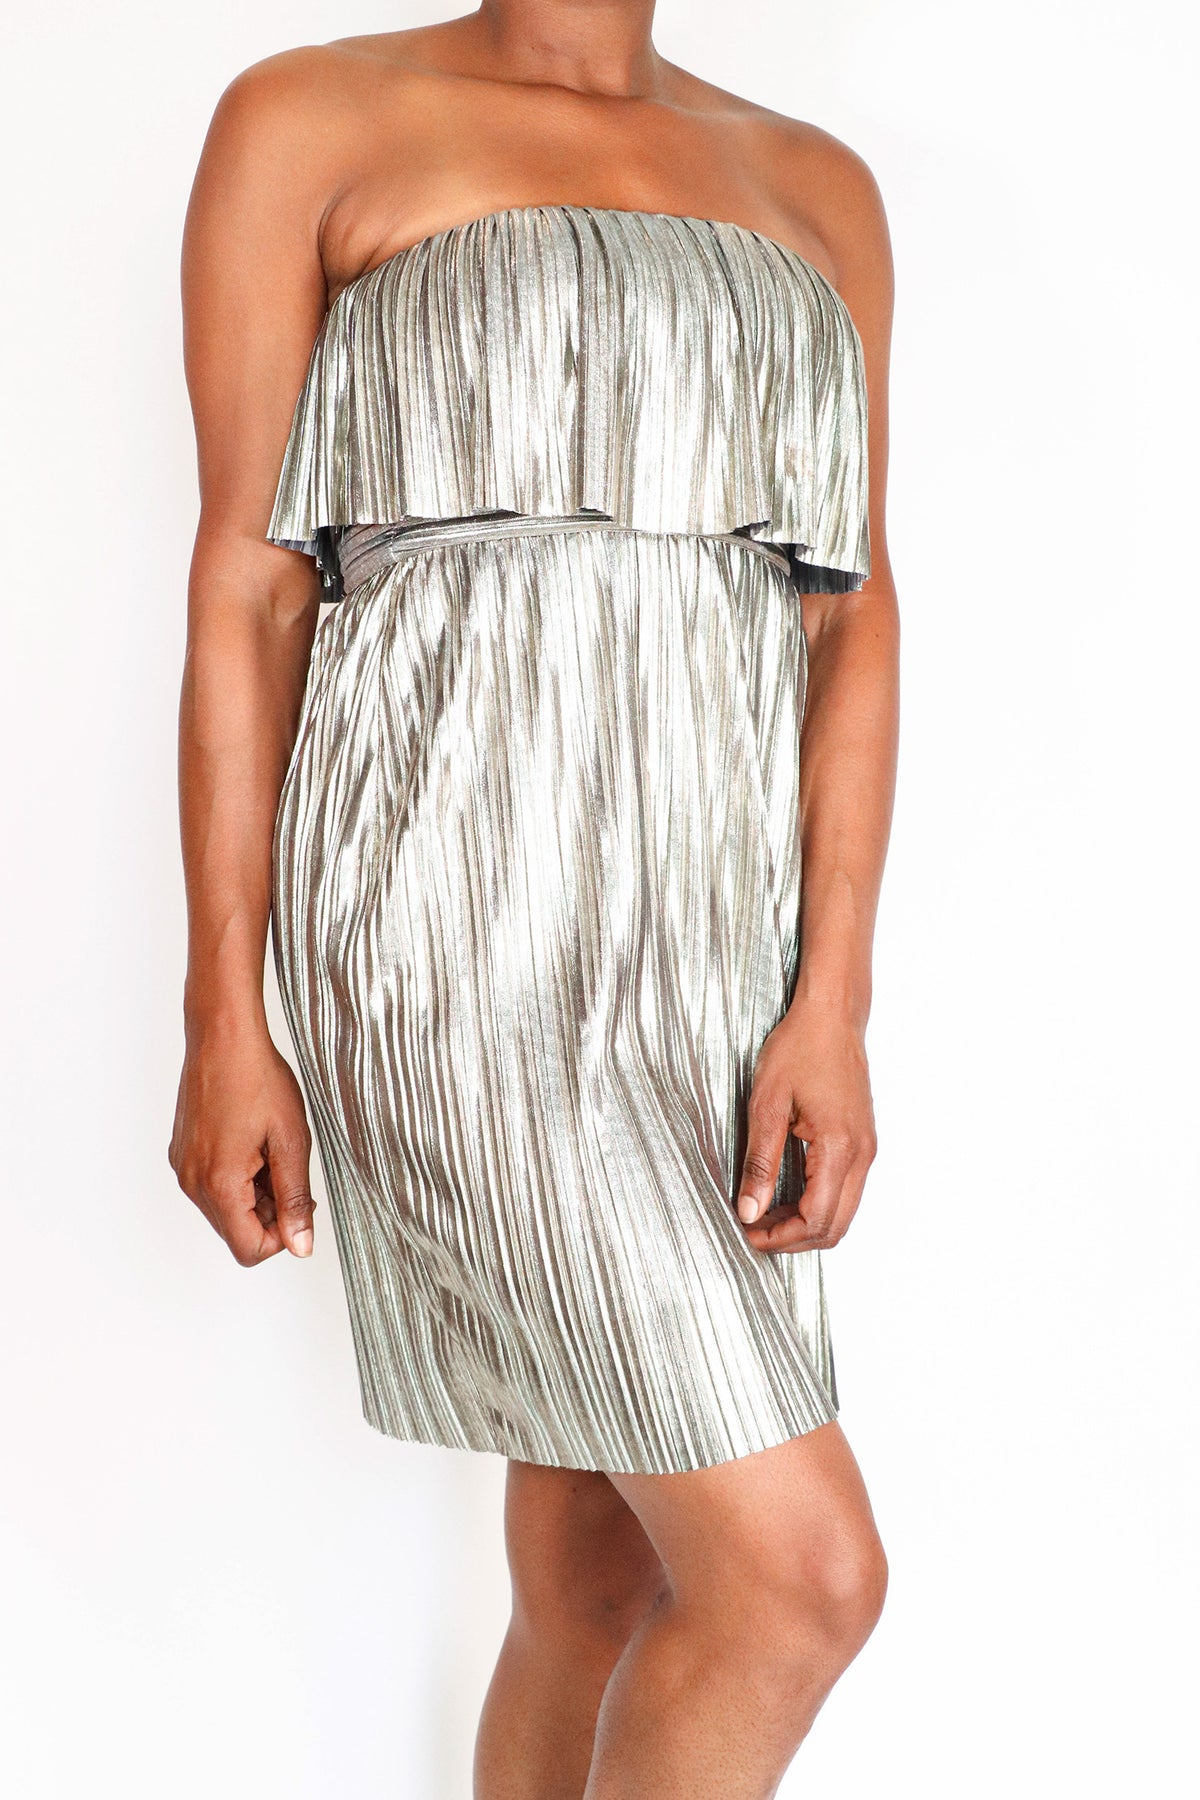 BCBGMAXAZRIA - Silver Metallic Accordion Dress - S